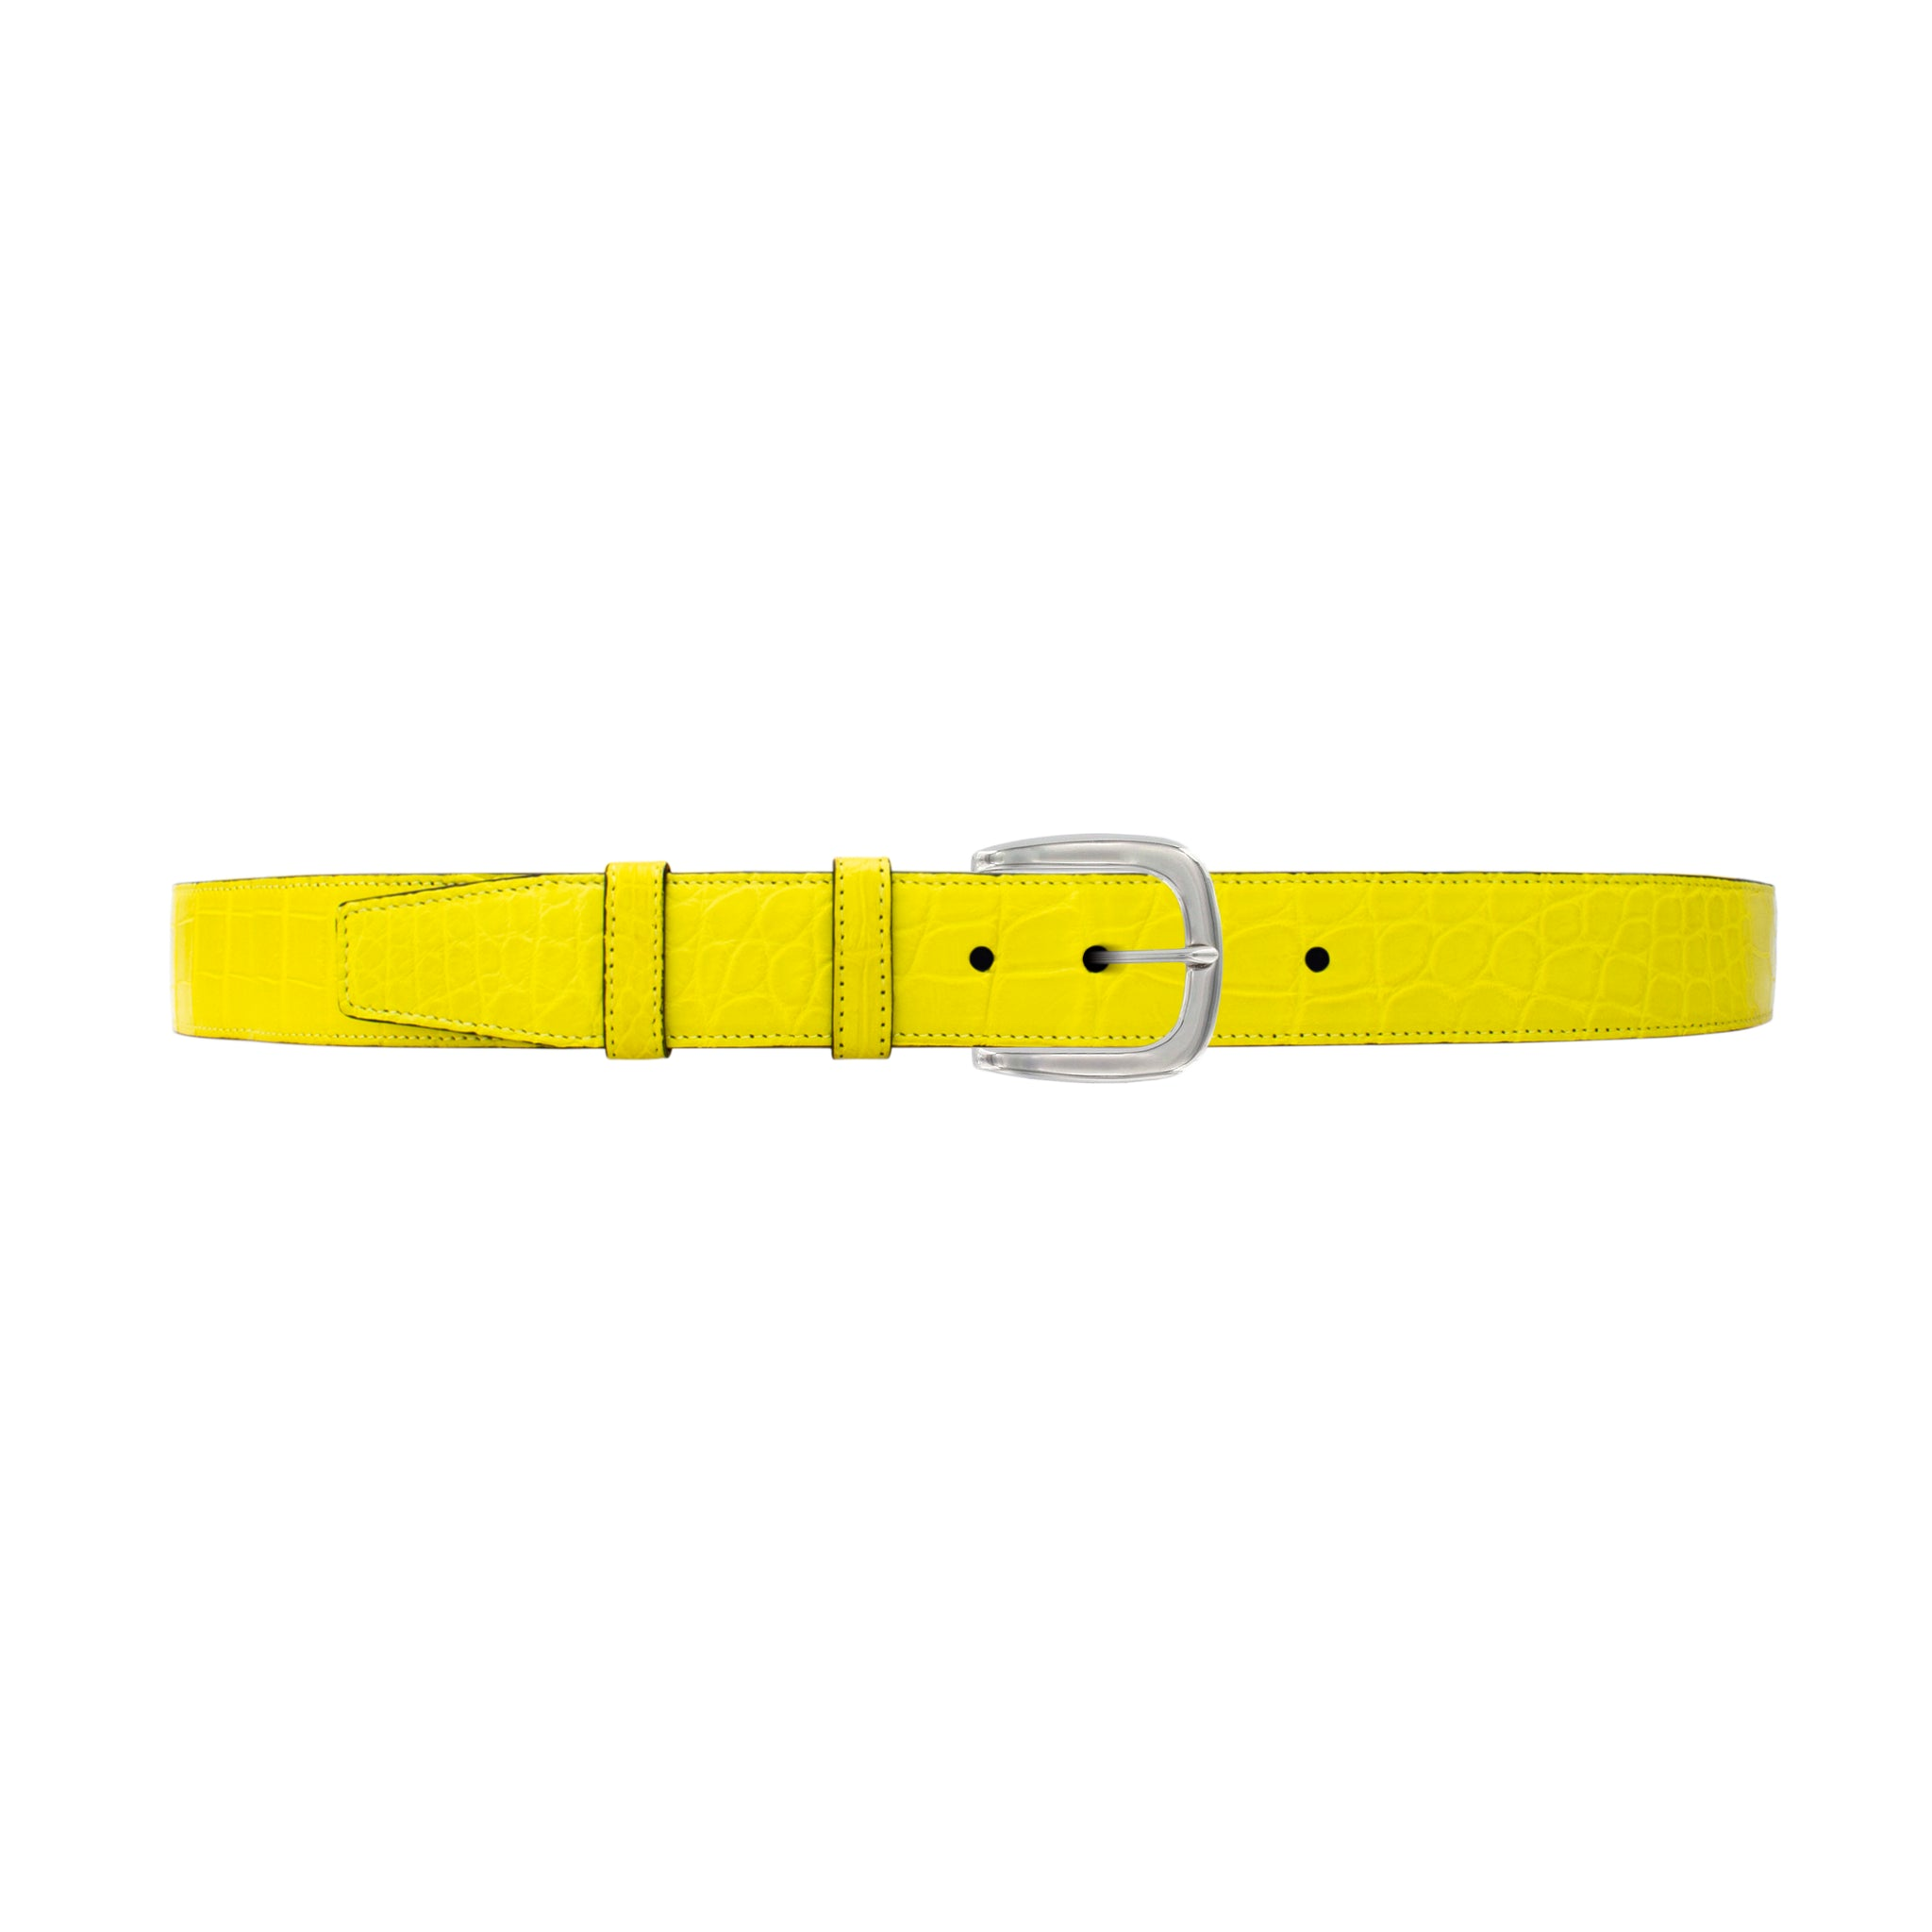 "1 1/2"" Canary Seasonal Belt with Oxford Cocktail Buckle in Polished Nickel"